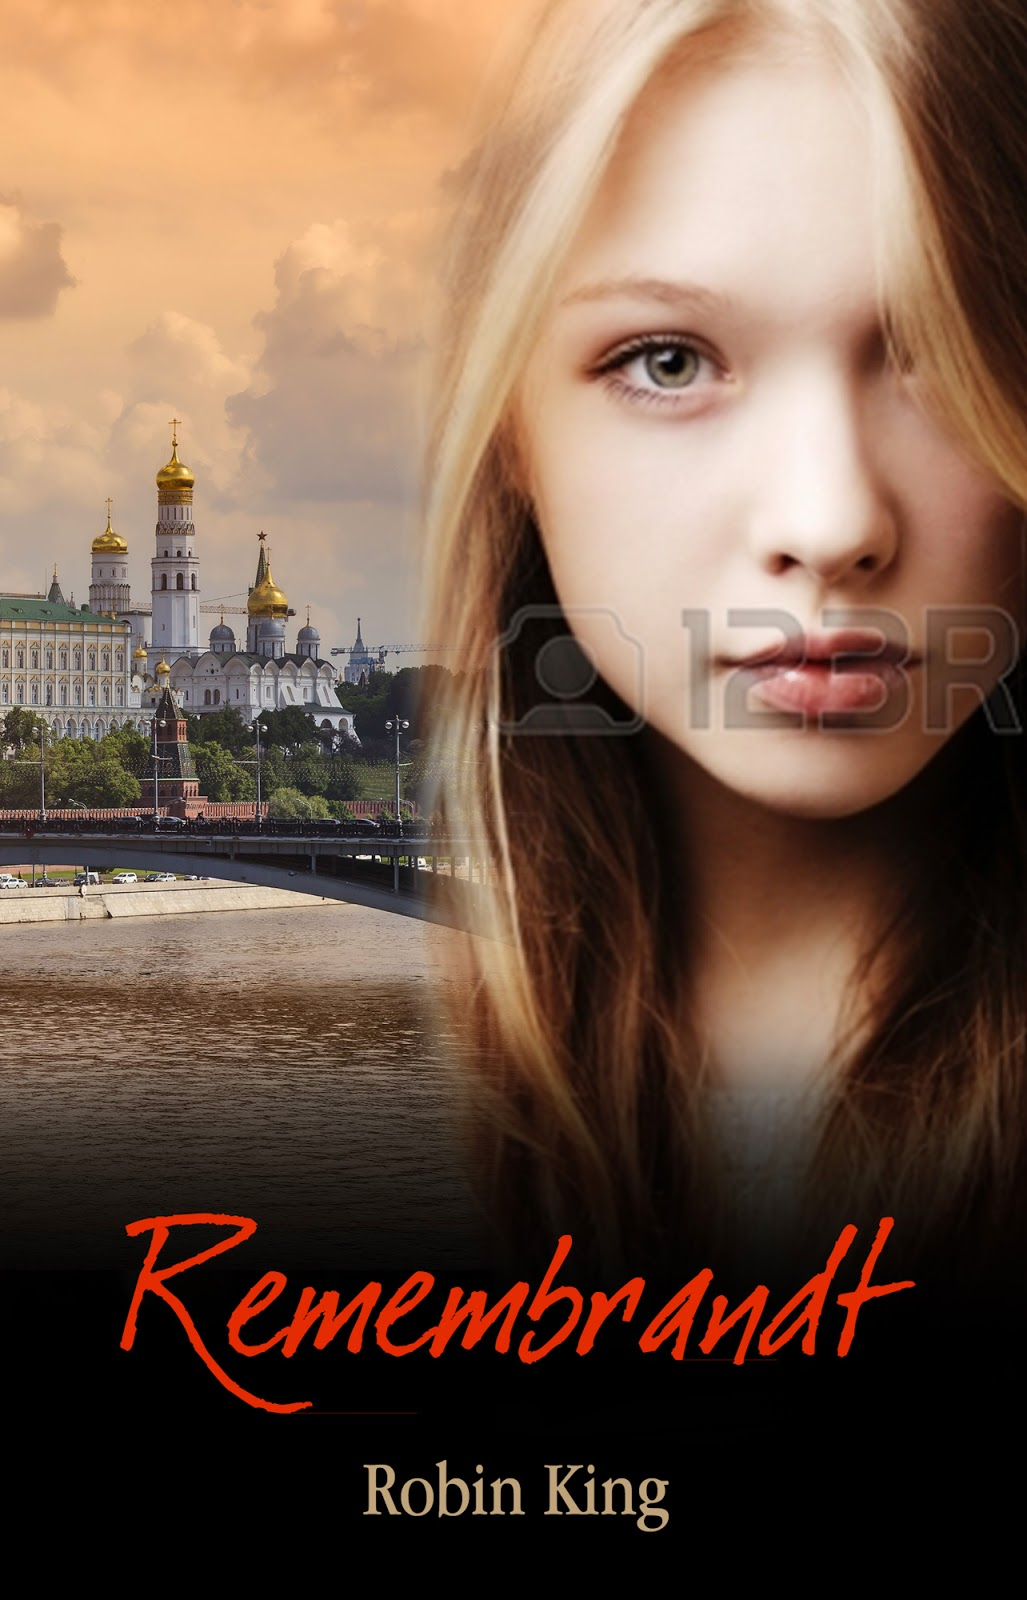 Young Adult Romantic suspense